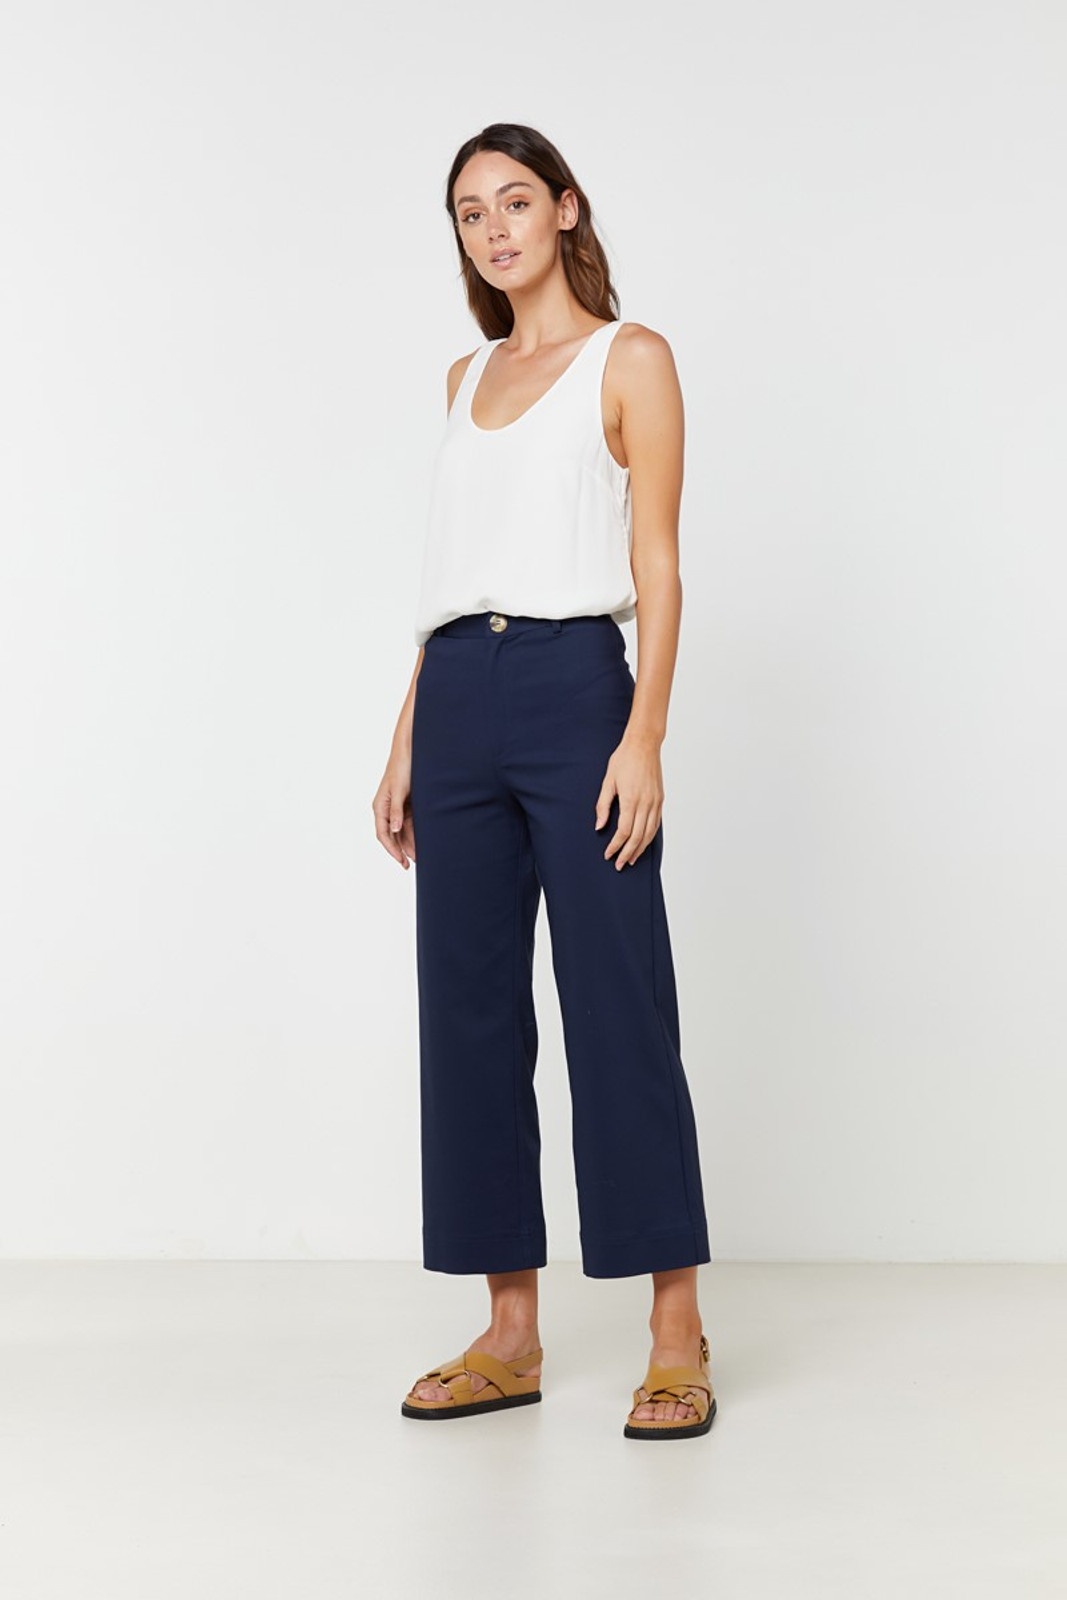 Elka Collective Ingrid Pant Navy  0